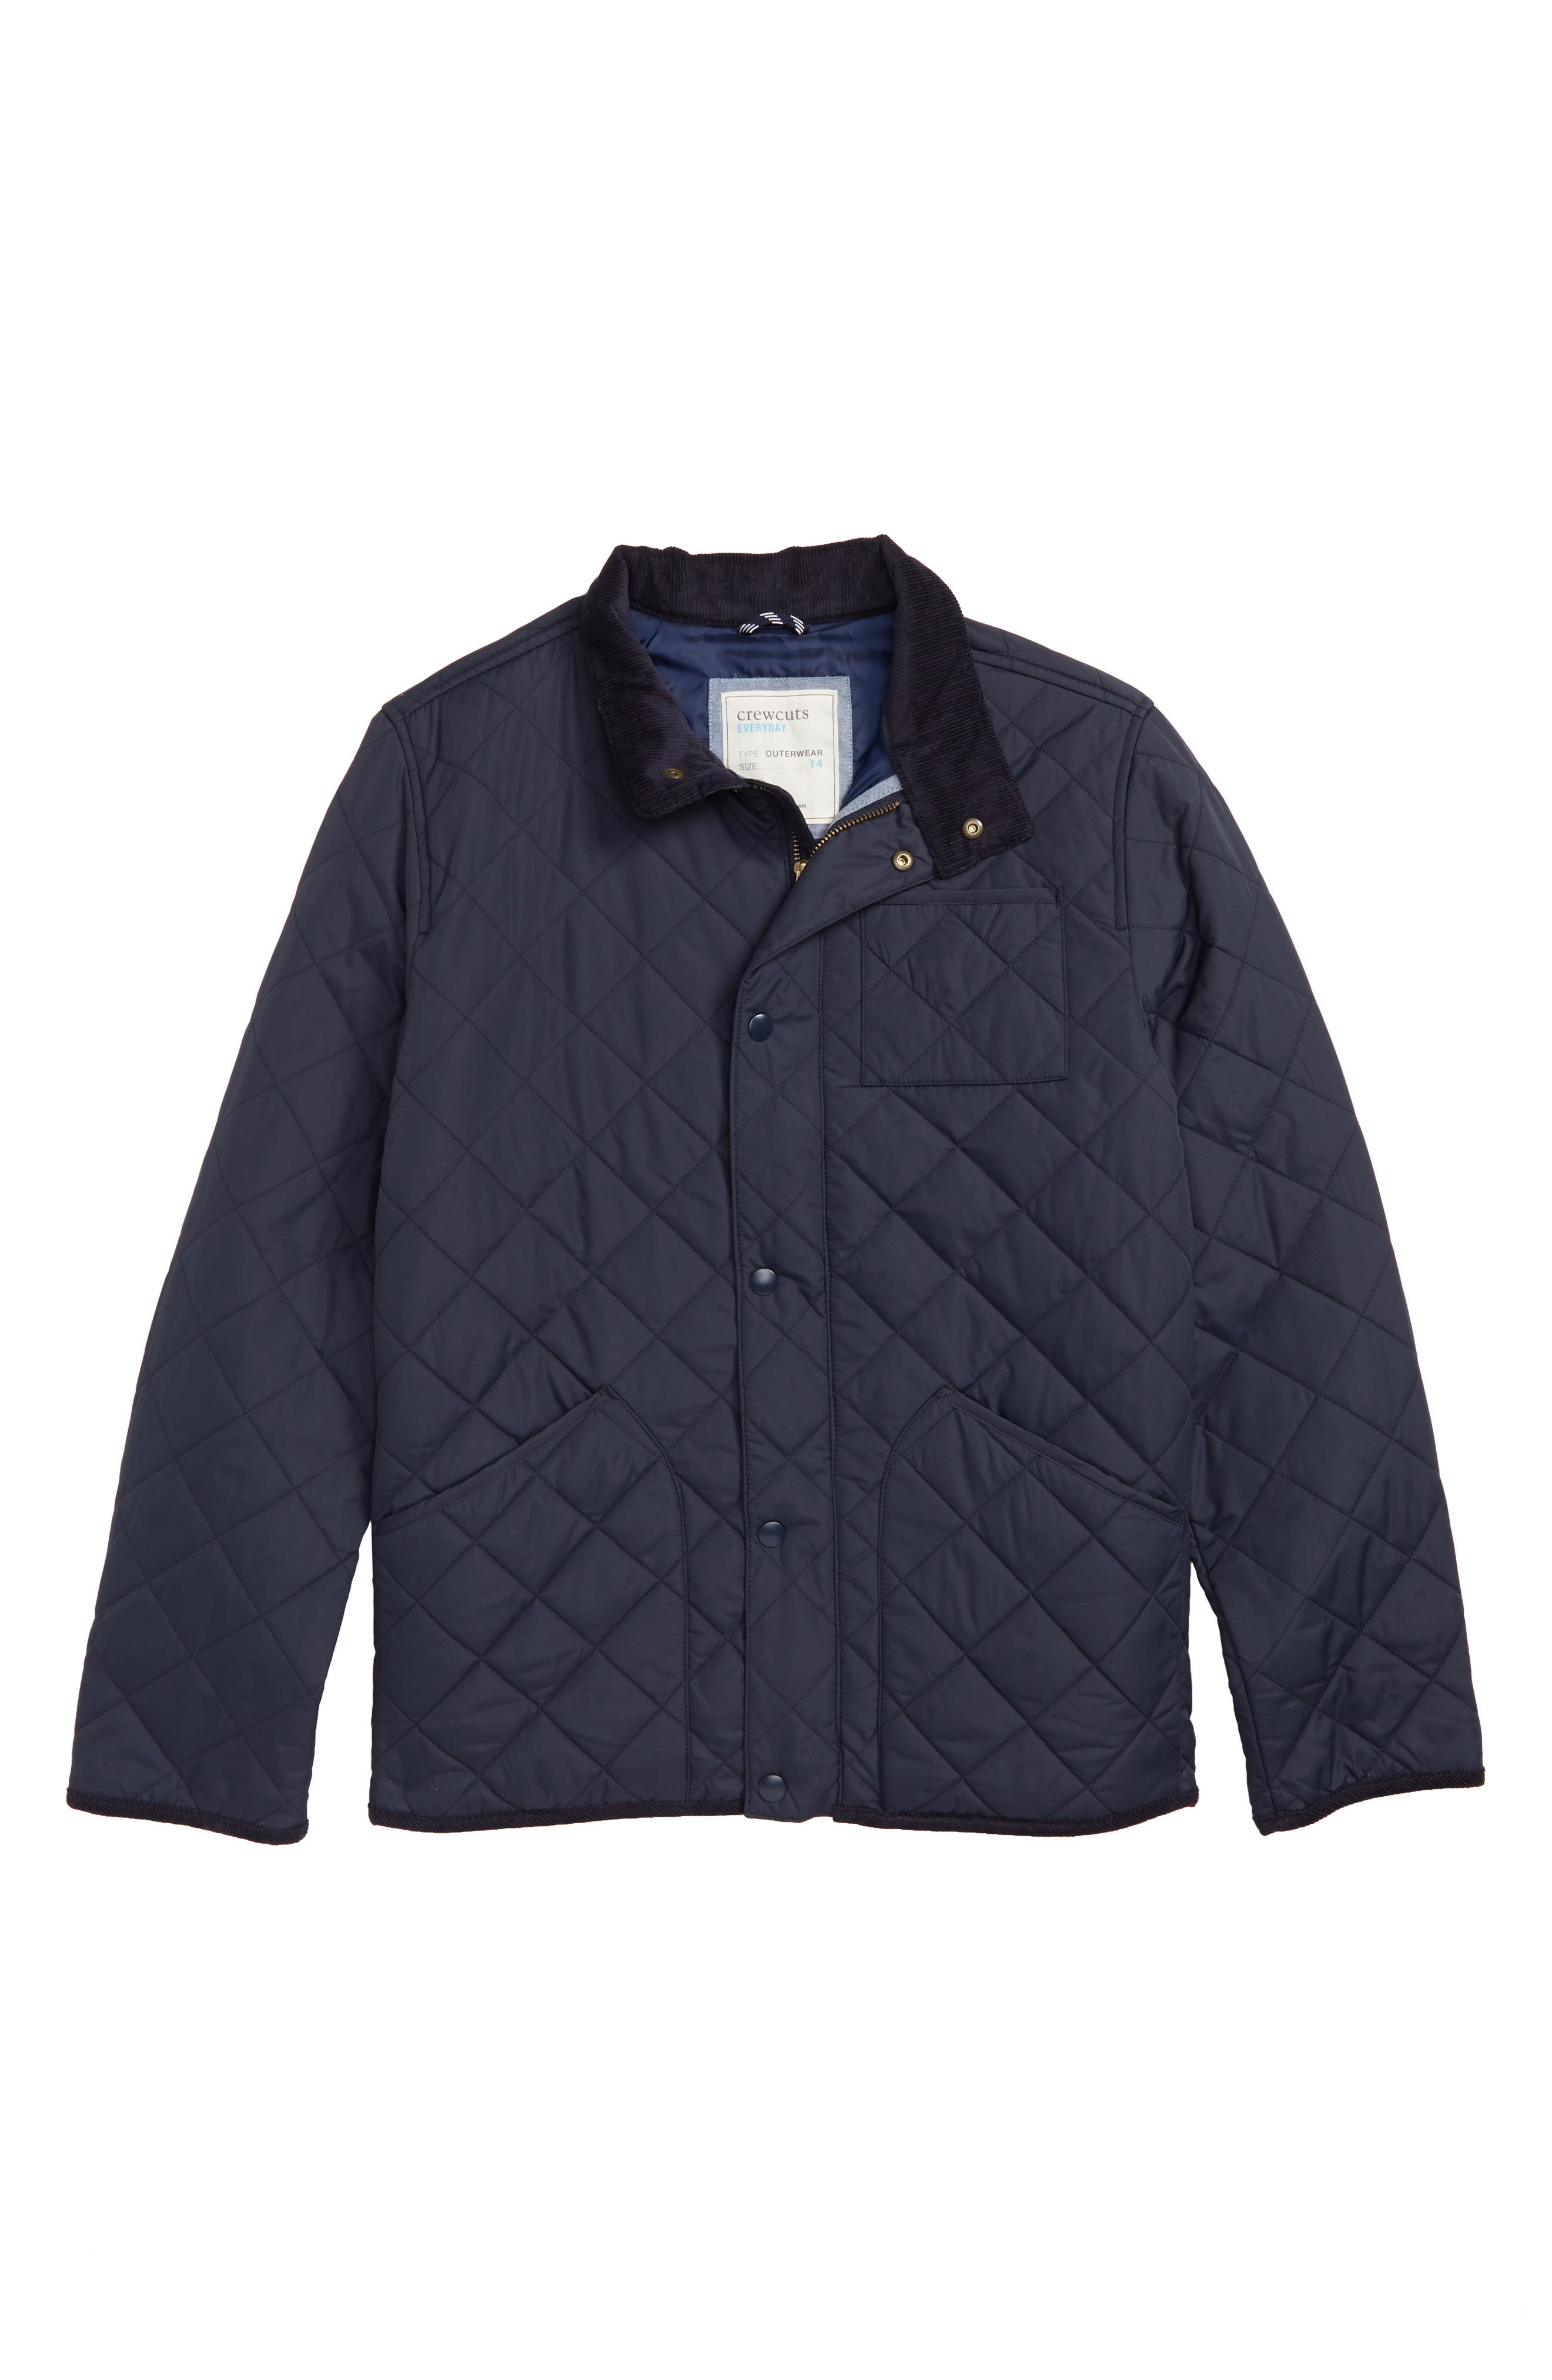 Sussex Quilted Jacket,                             Main thumbnail 1, color,                             400